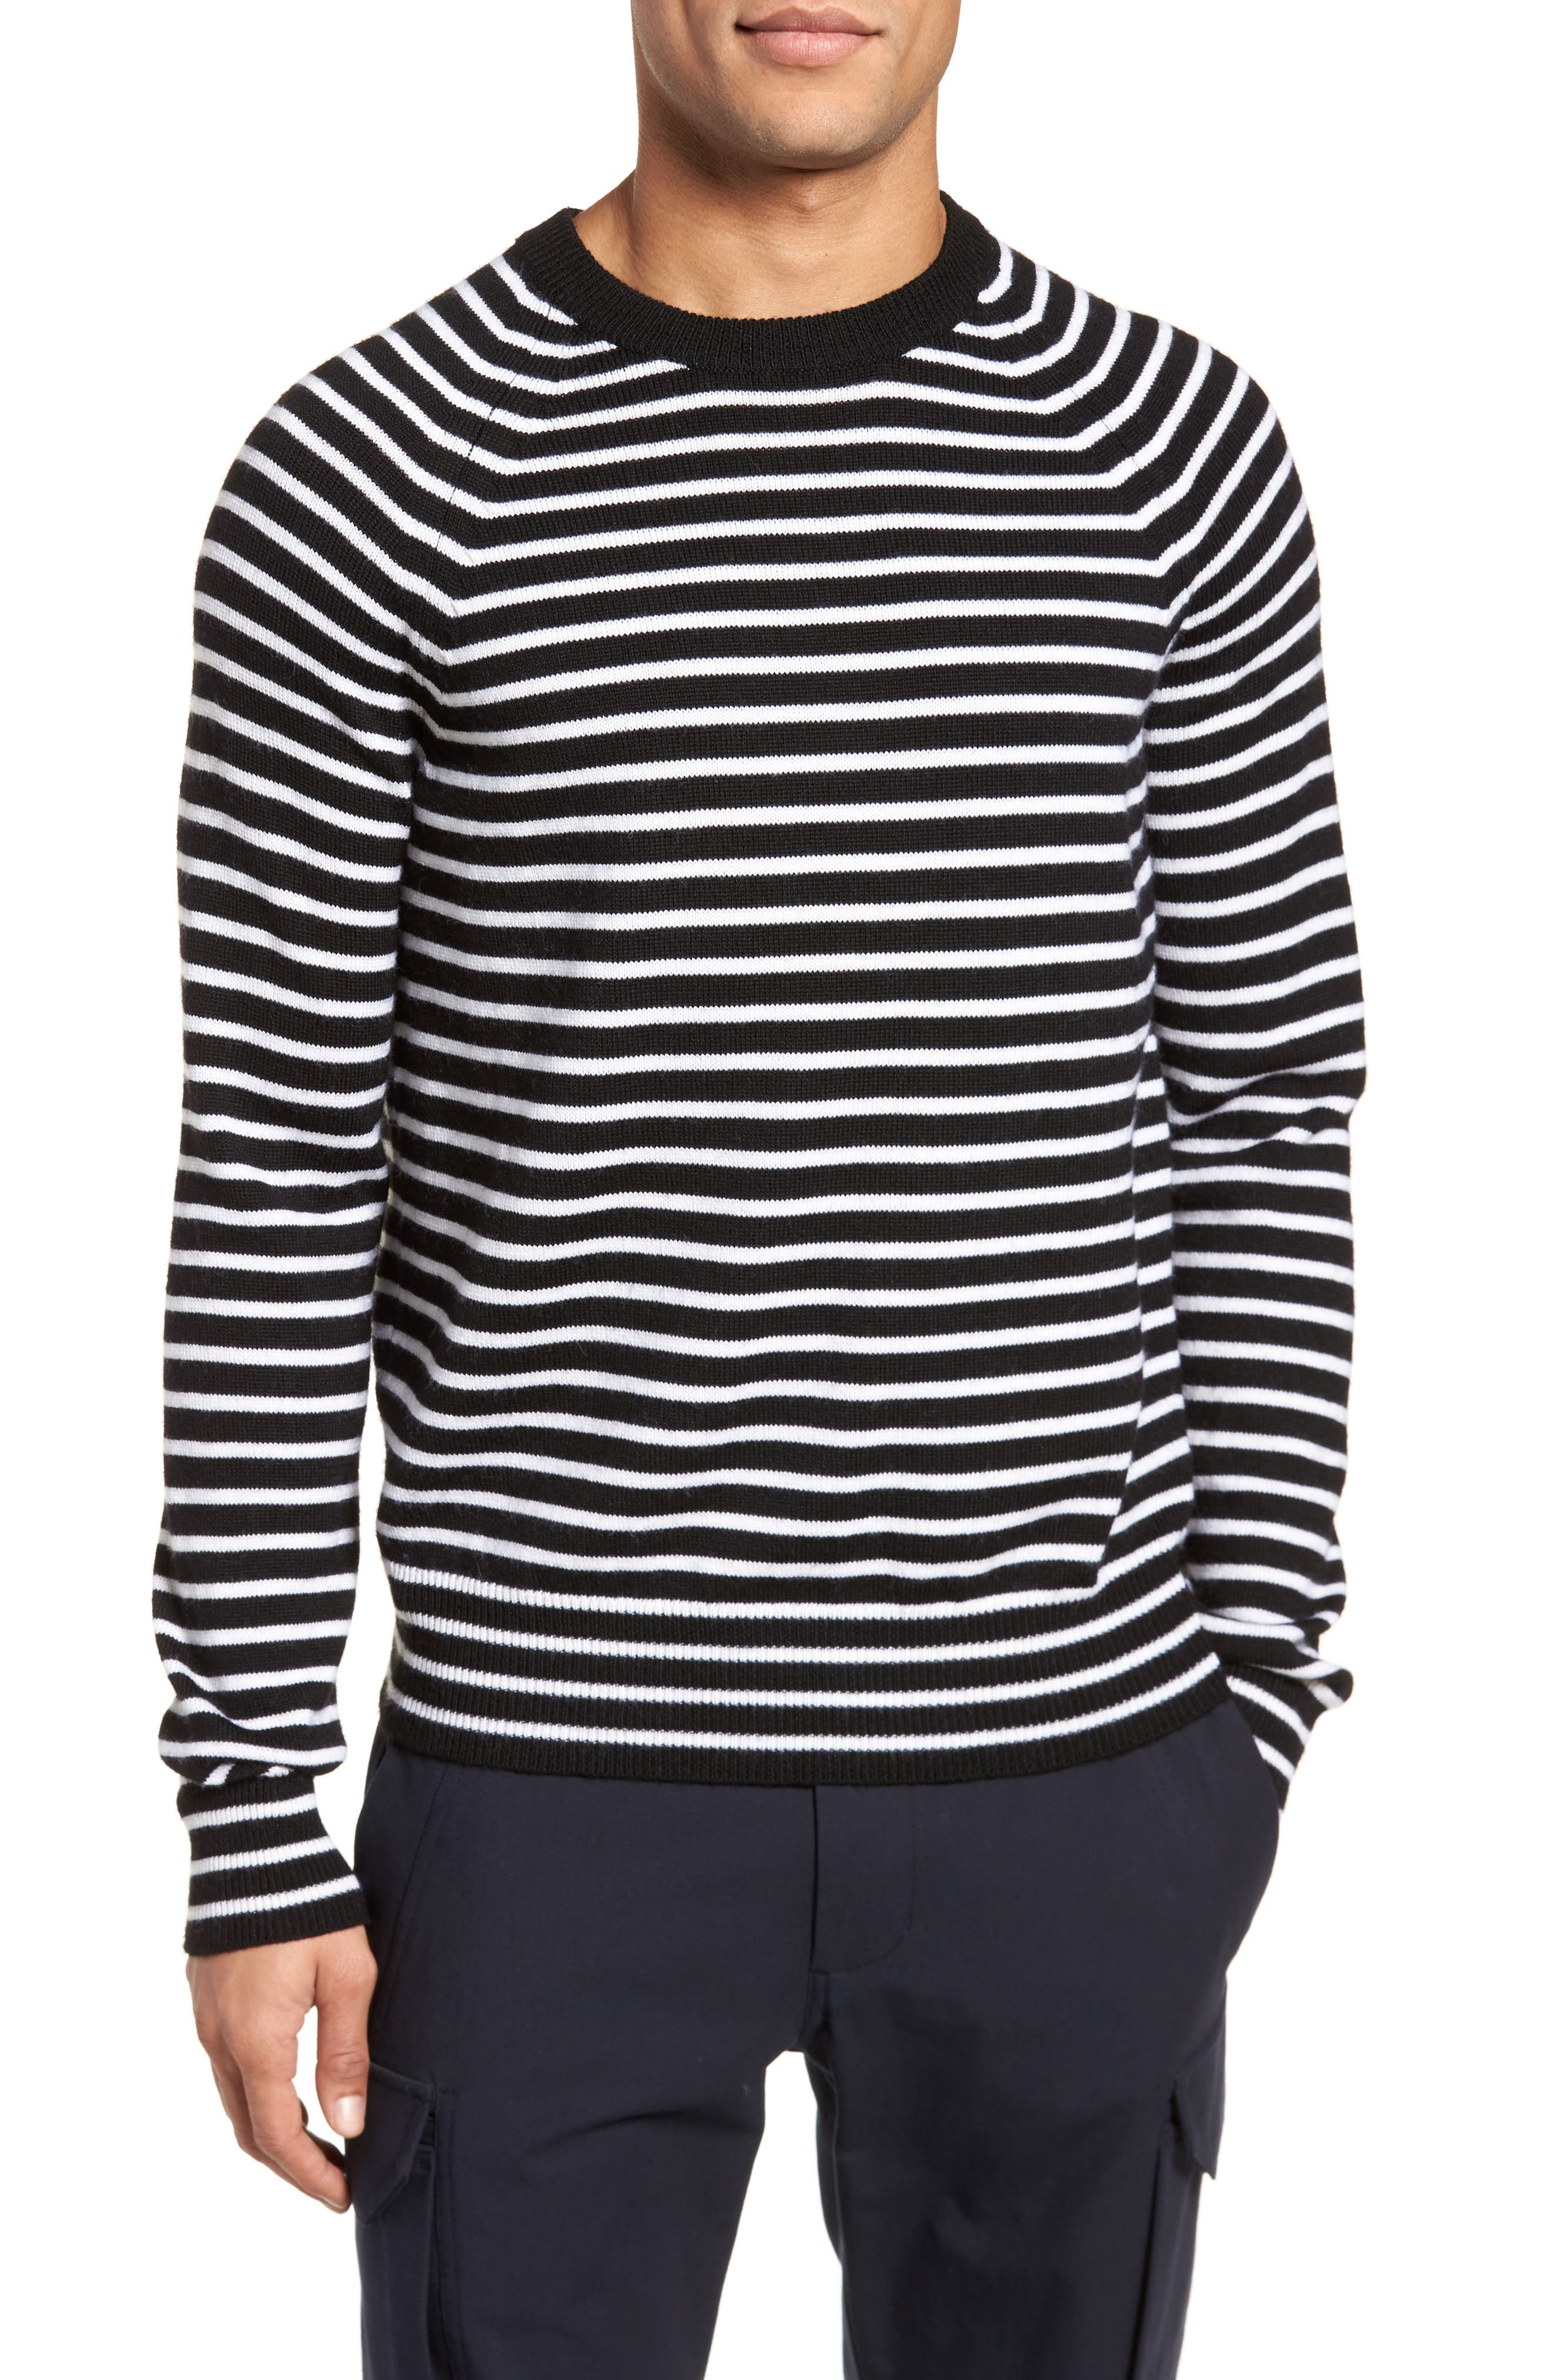 Regular Fit Striped Wool Sweater,                         Main,                         color, Black/ Stormy White